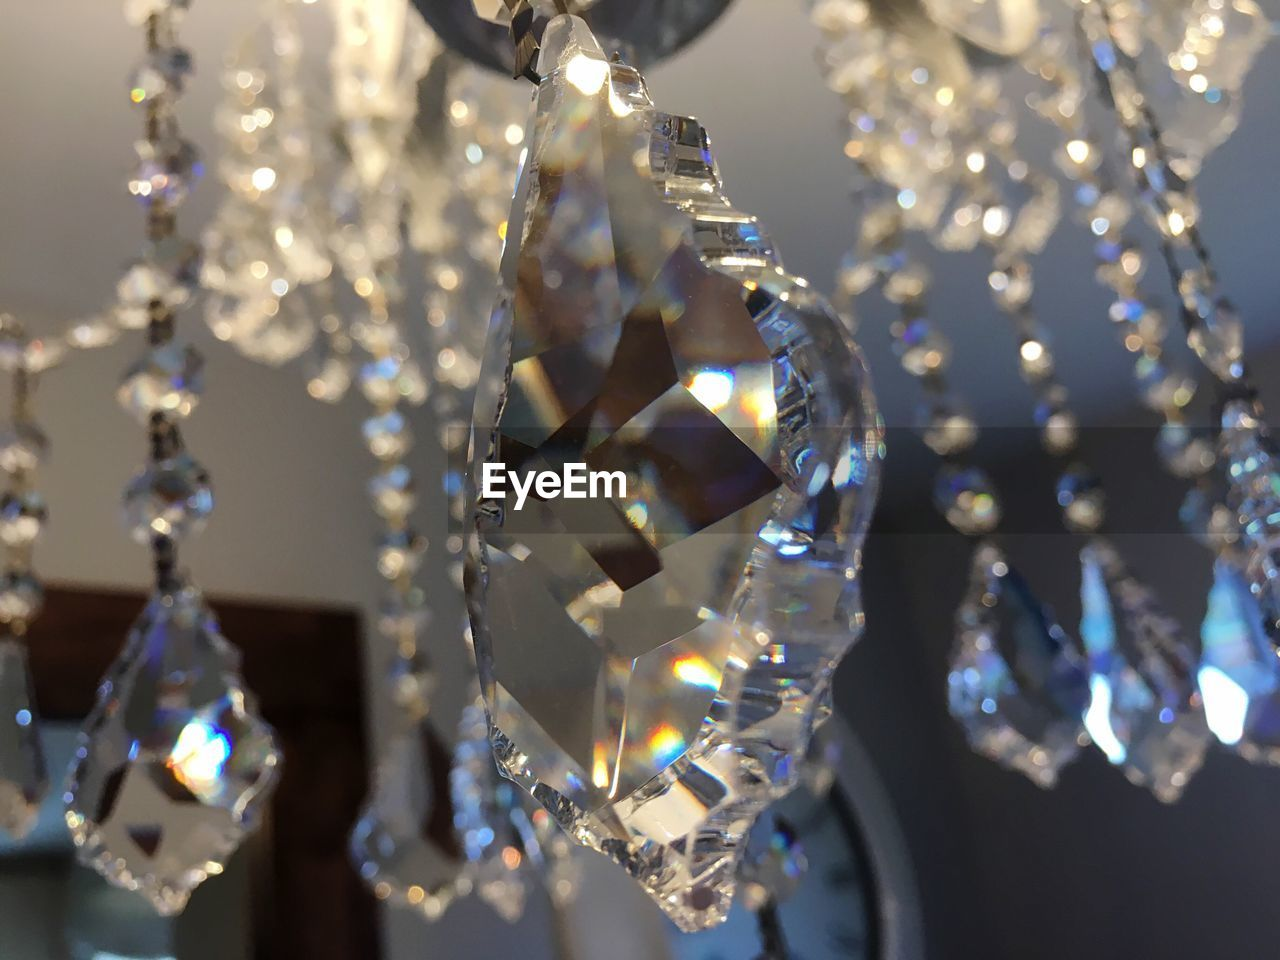 Low angle view of crystals hanging from chandelier